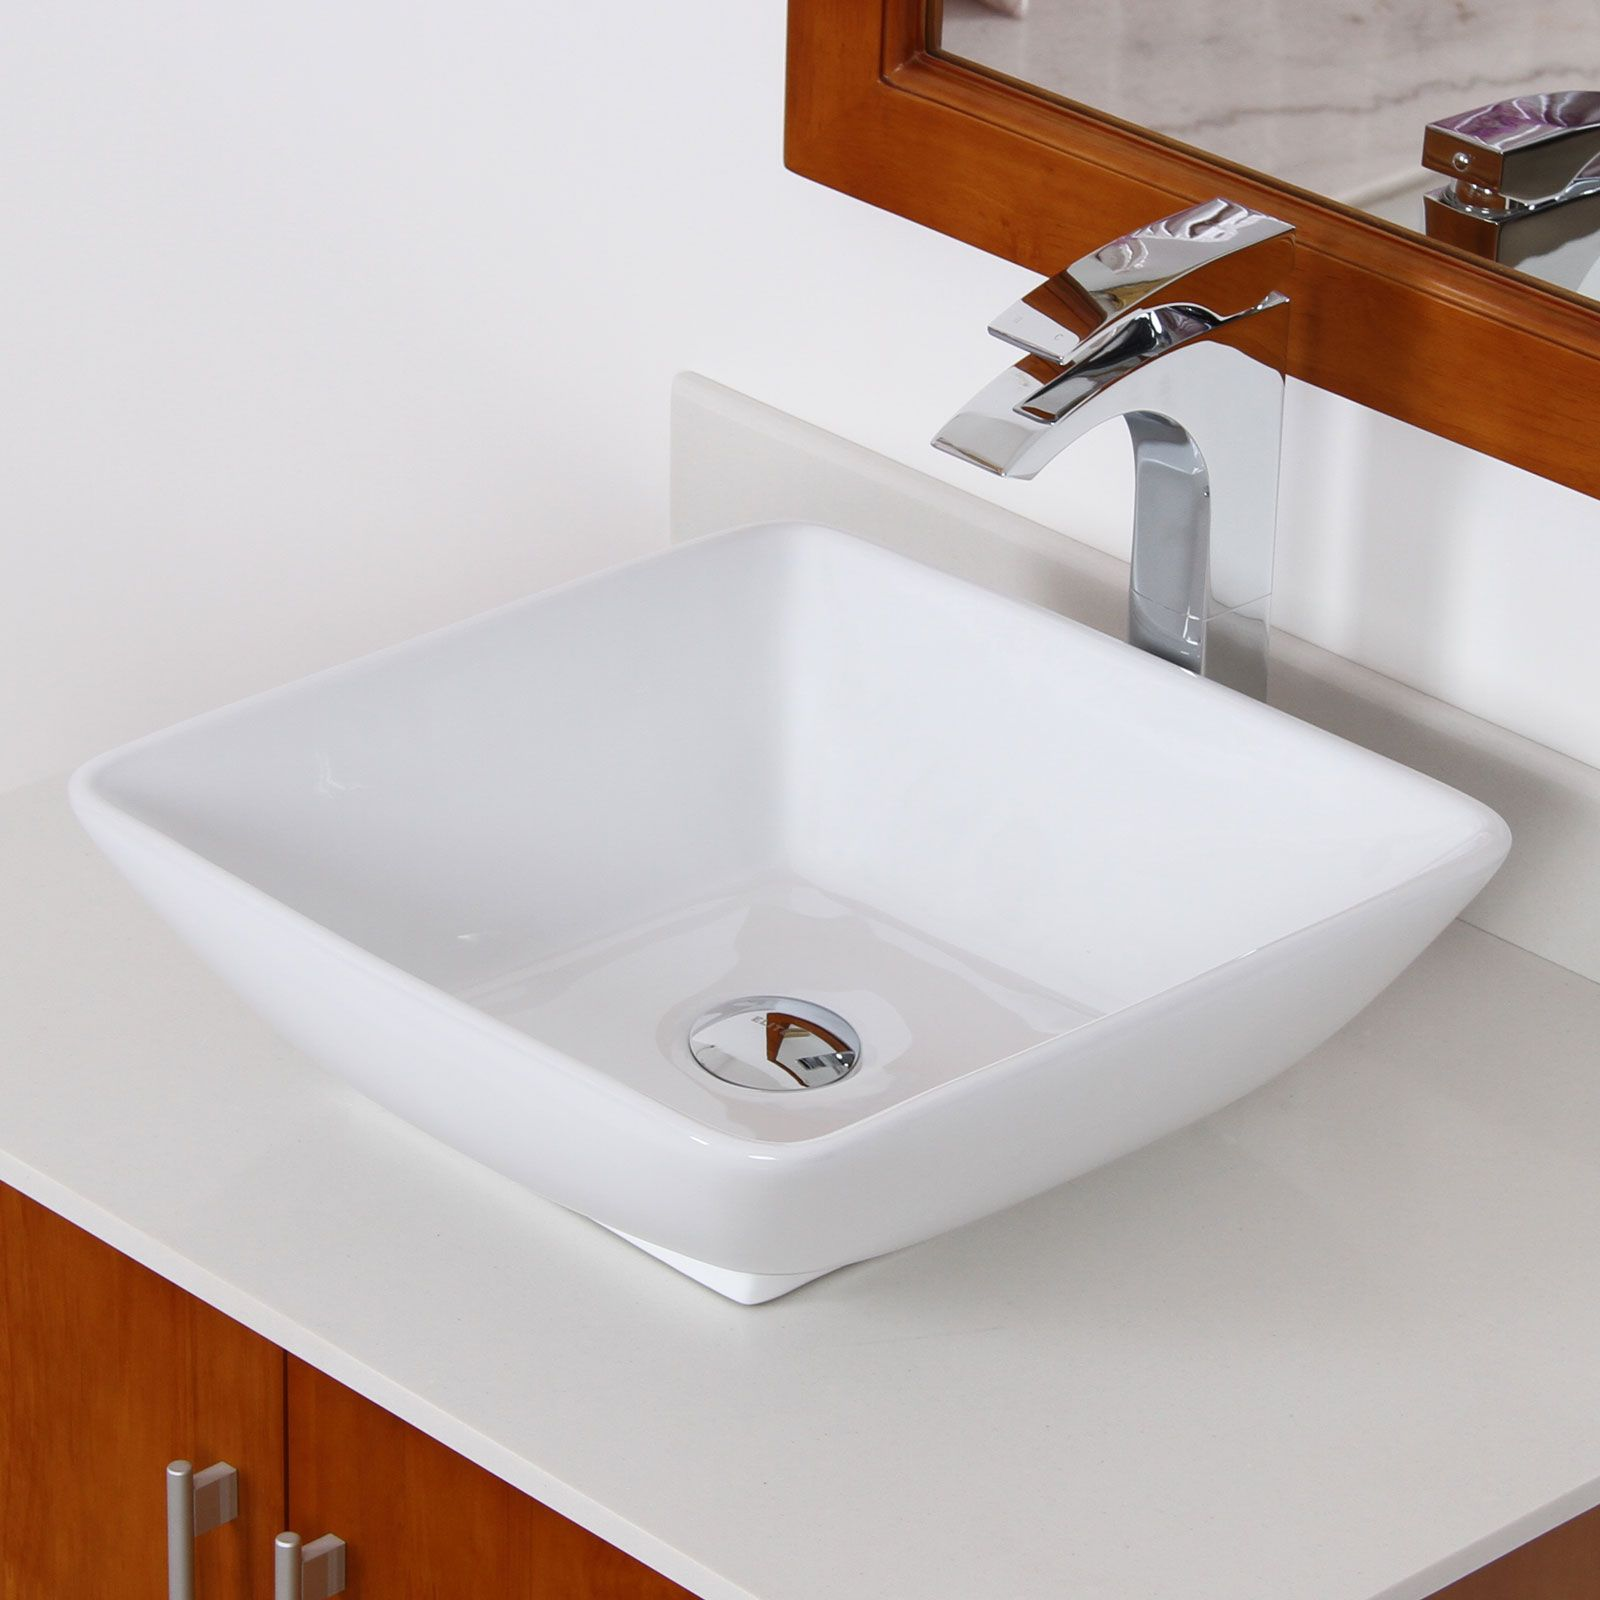 Elite bathroom sinks - This Elite Bathroom Sink Is Constructed Of Grade A Ceramic In A Stylish Modern Square